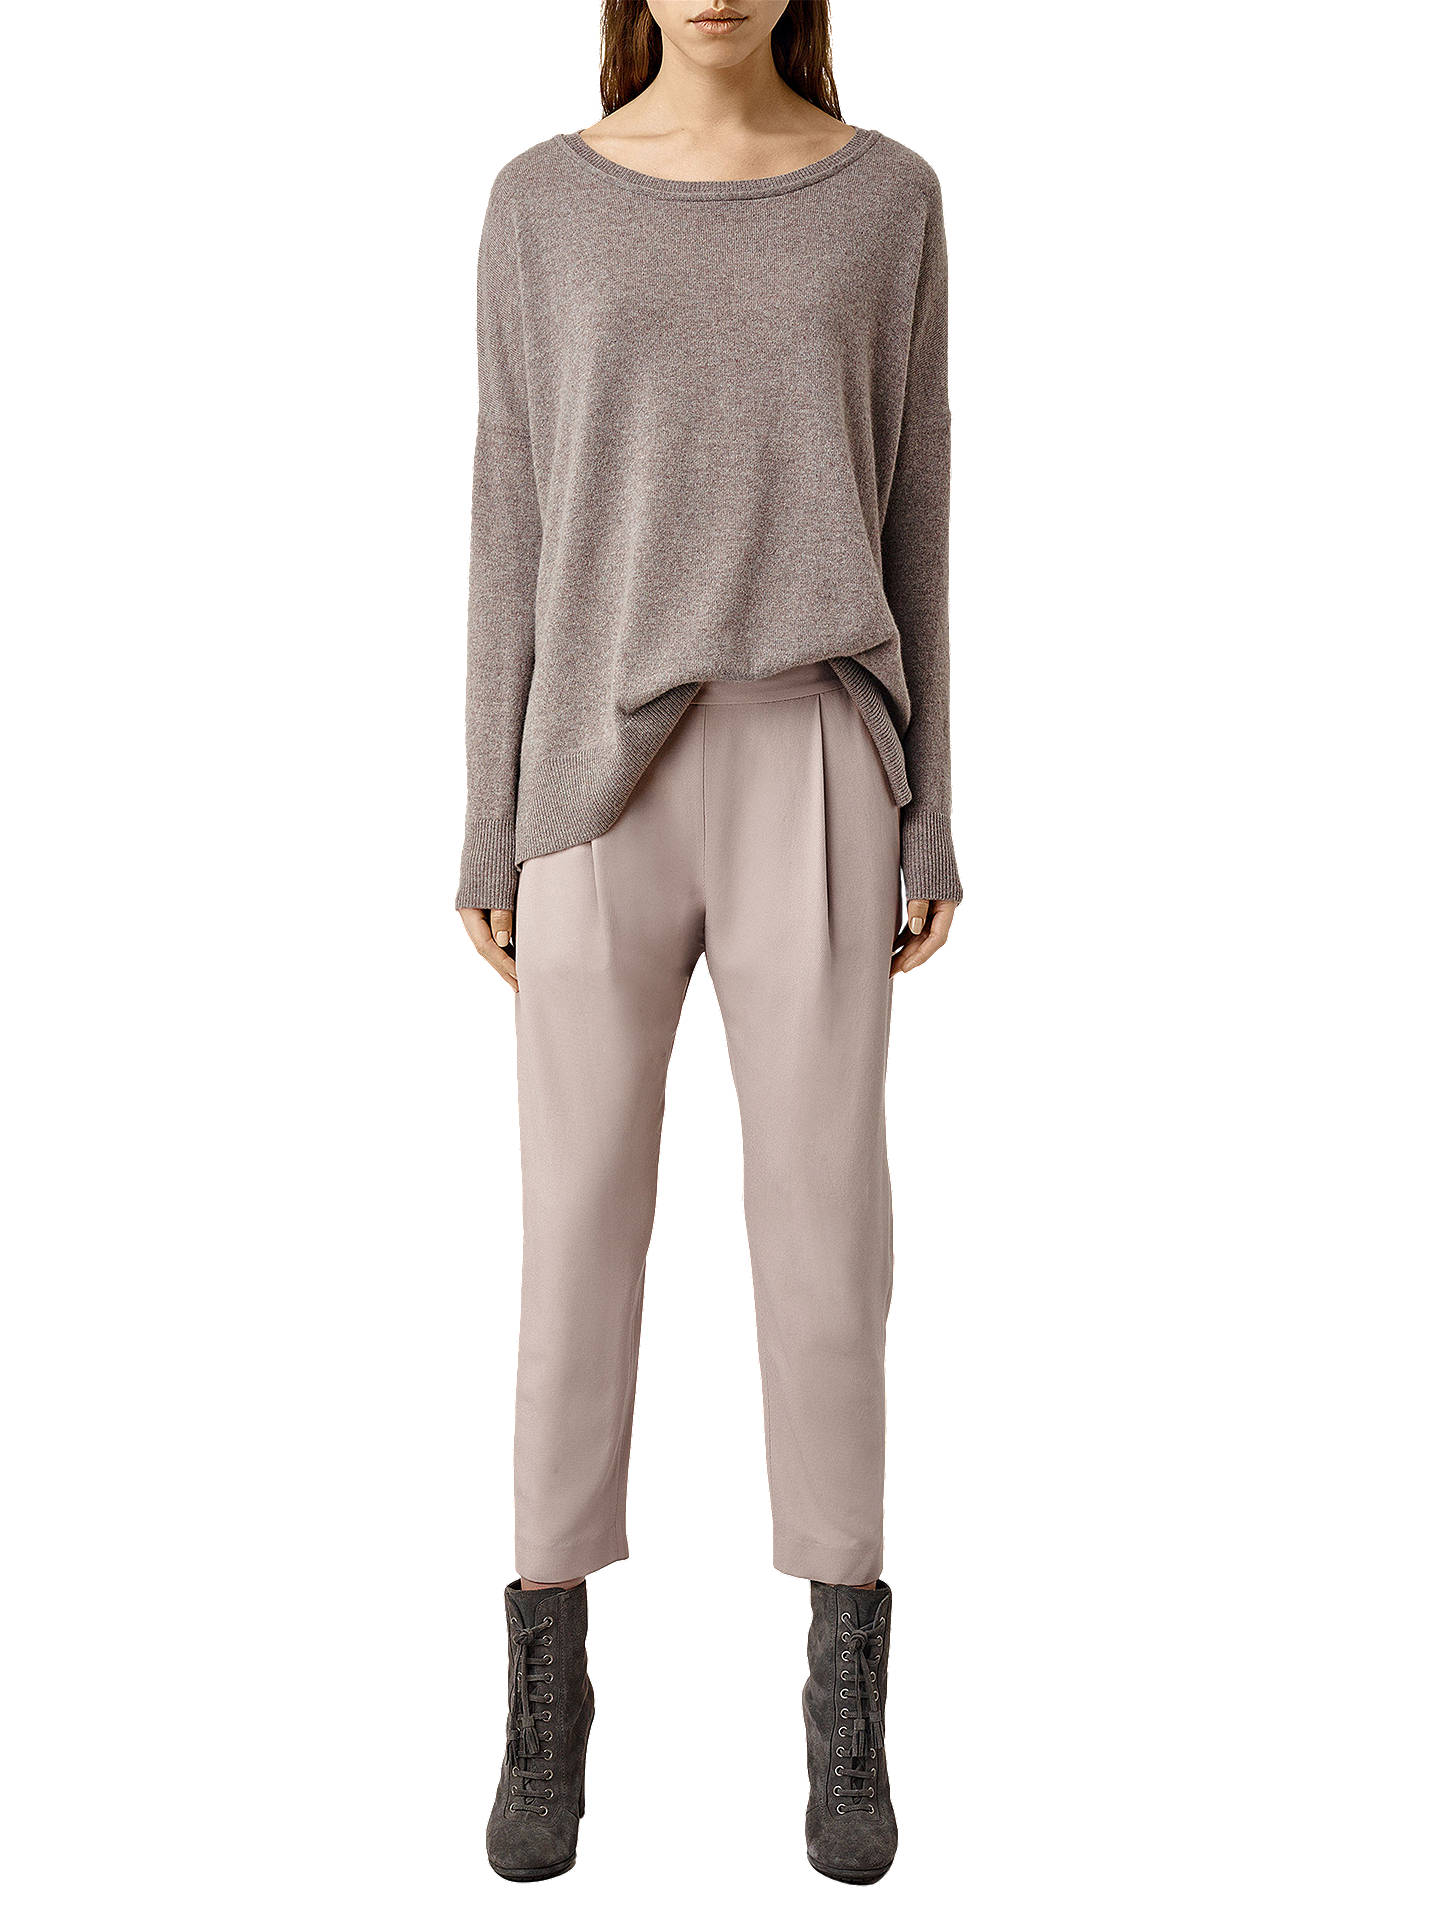 41dfd420d596a AllSaints Aleida Trousers, Dusty Pink at John Lewis & Partners